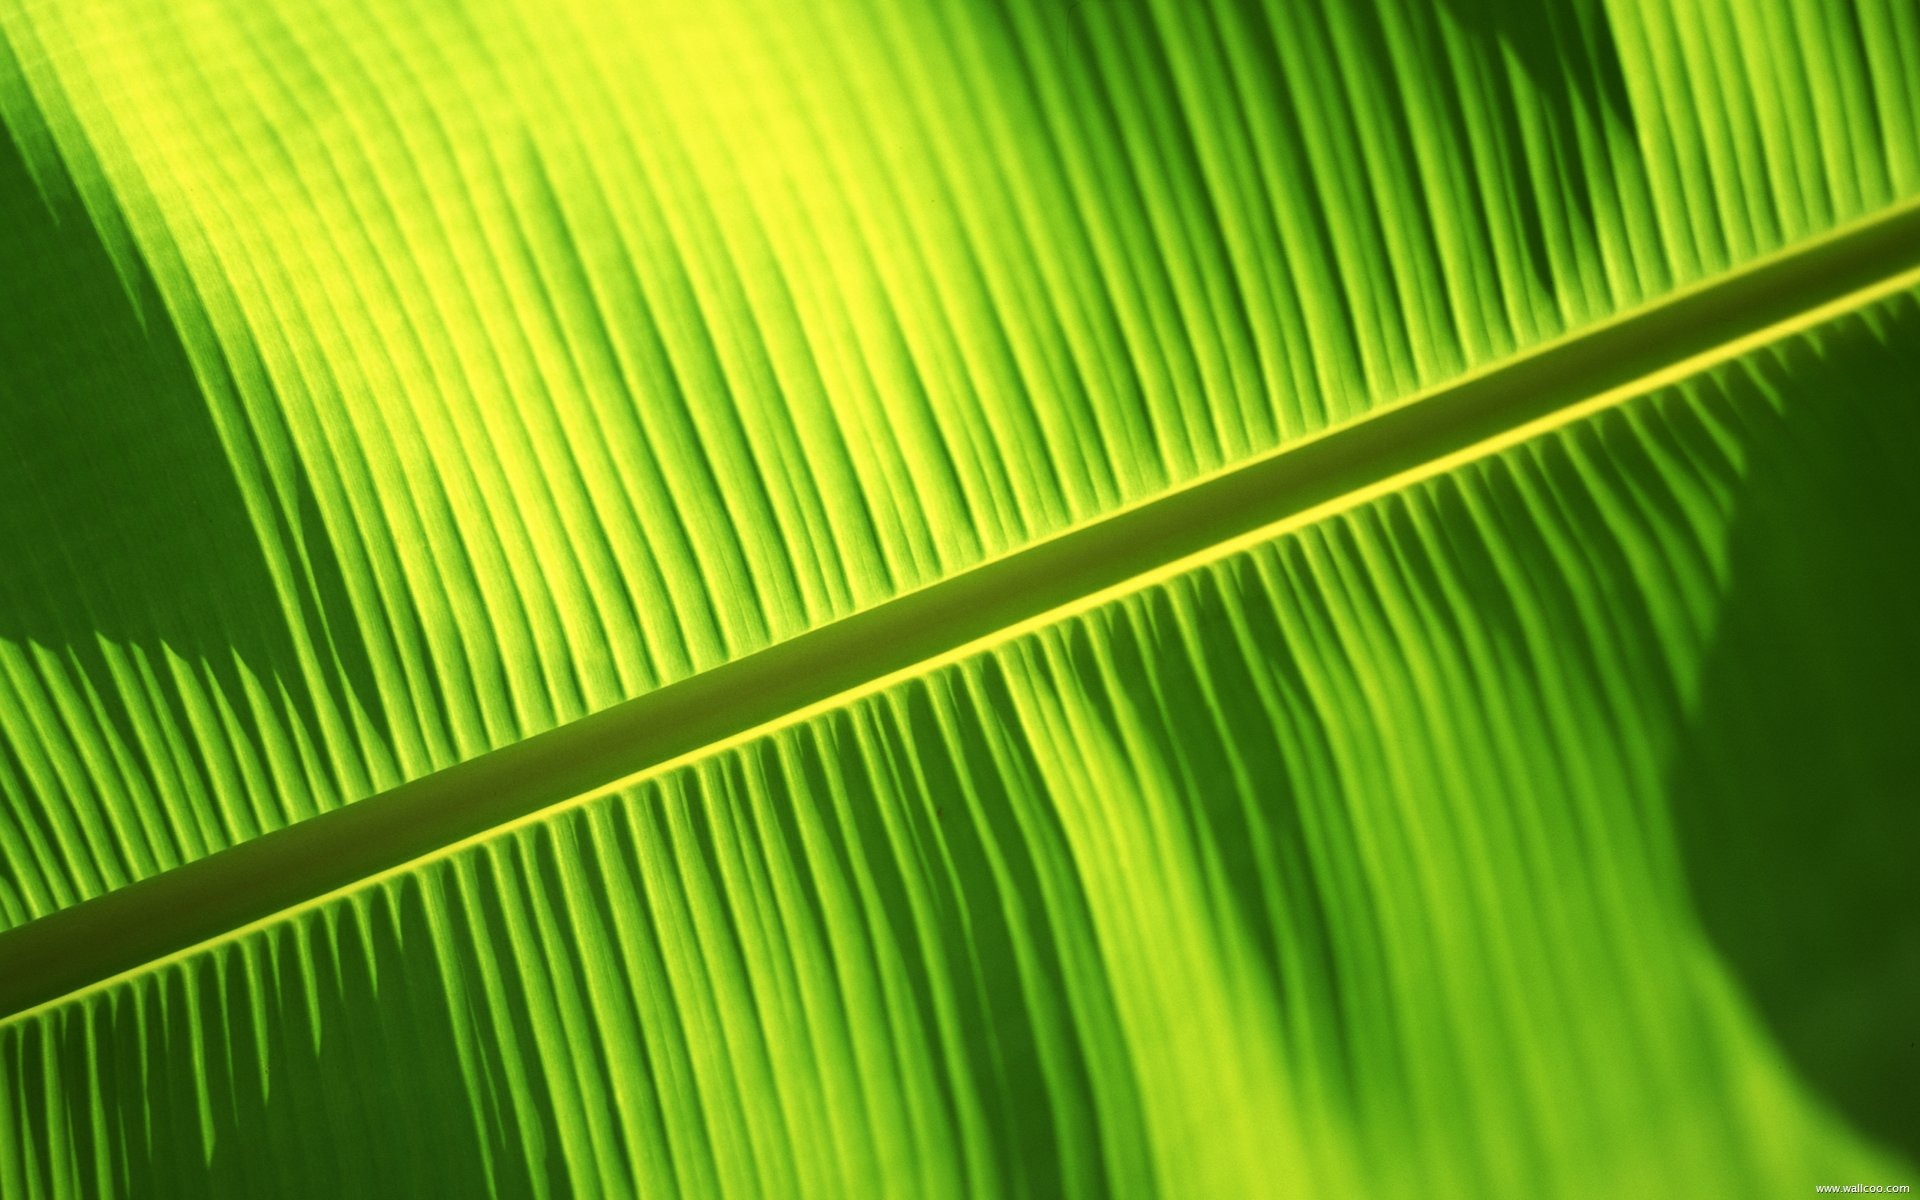 Bali Banana Leaf Wallpaper Download 1920x1200px 1920x1200